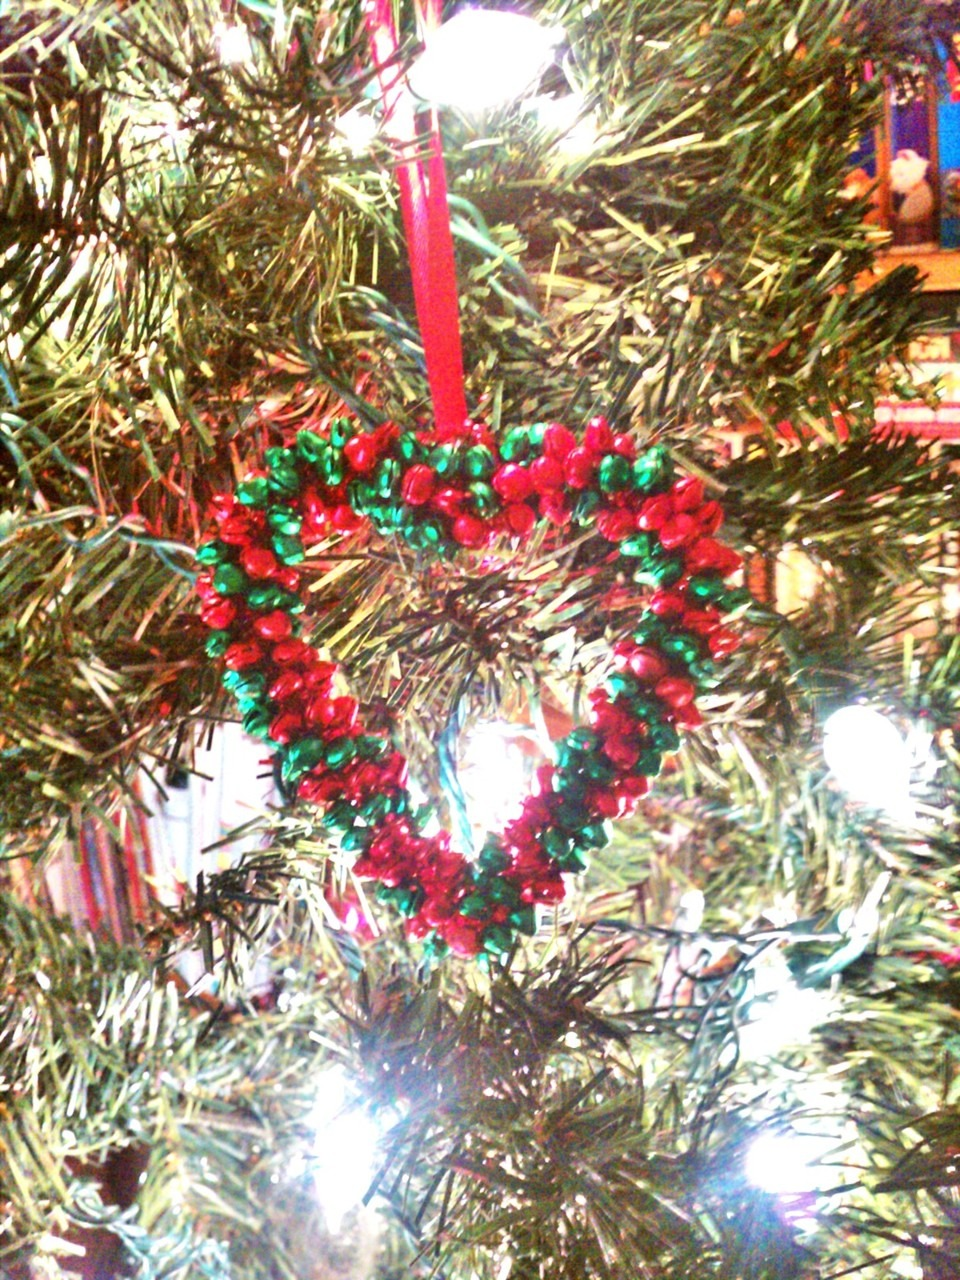 Have a Well Hung Heart Holidays.